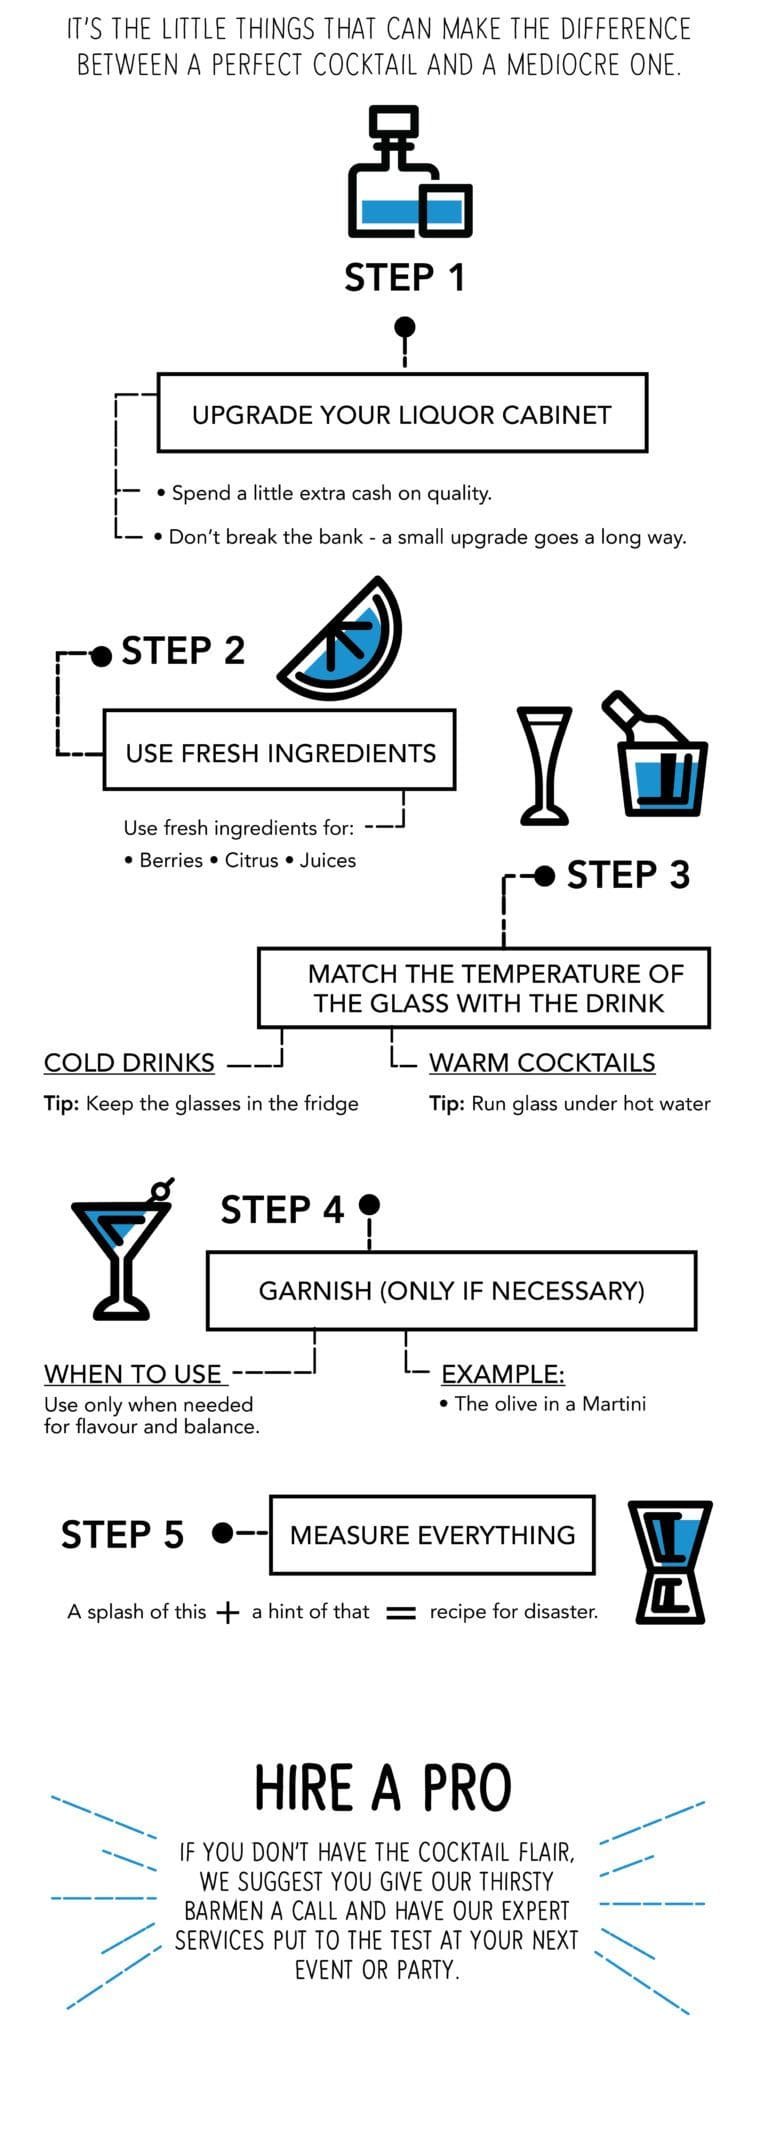 5 STEPS TO BETTER COCKTAILS